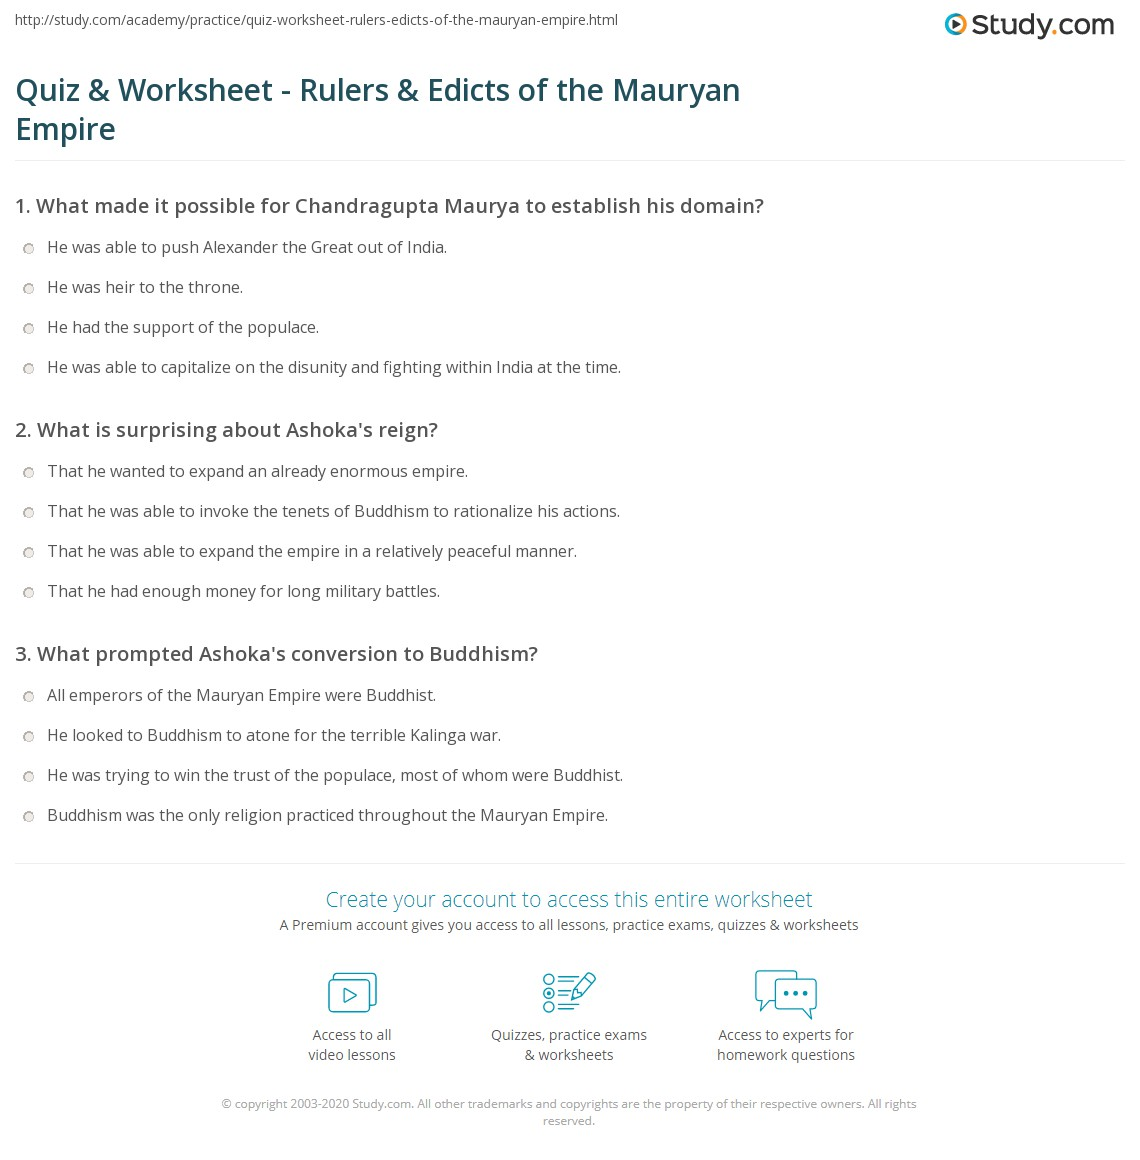 quiz worksheet rulers edicts of the mauryan empire. Black Bedroom Furniture Sets. Home Design Ideas